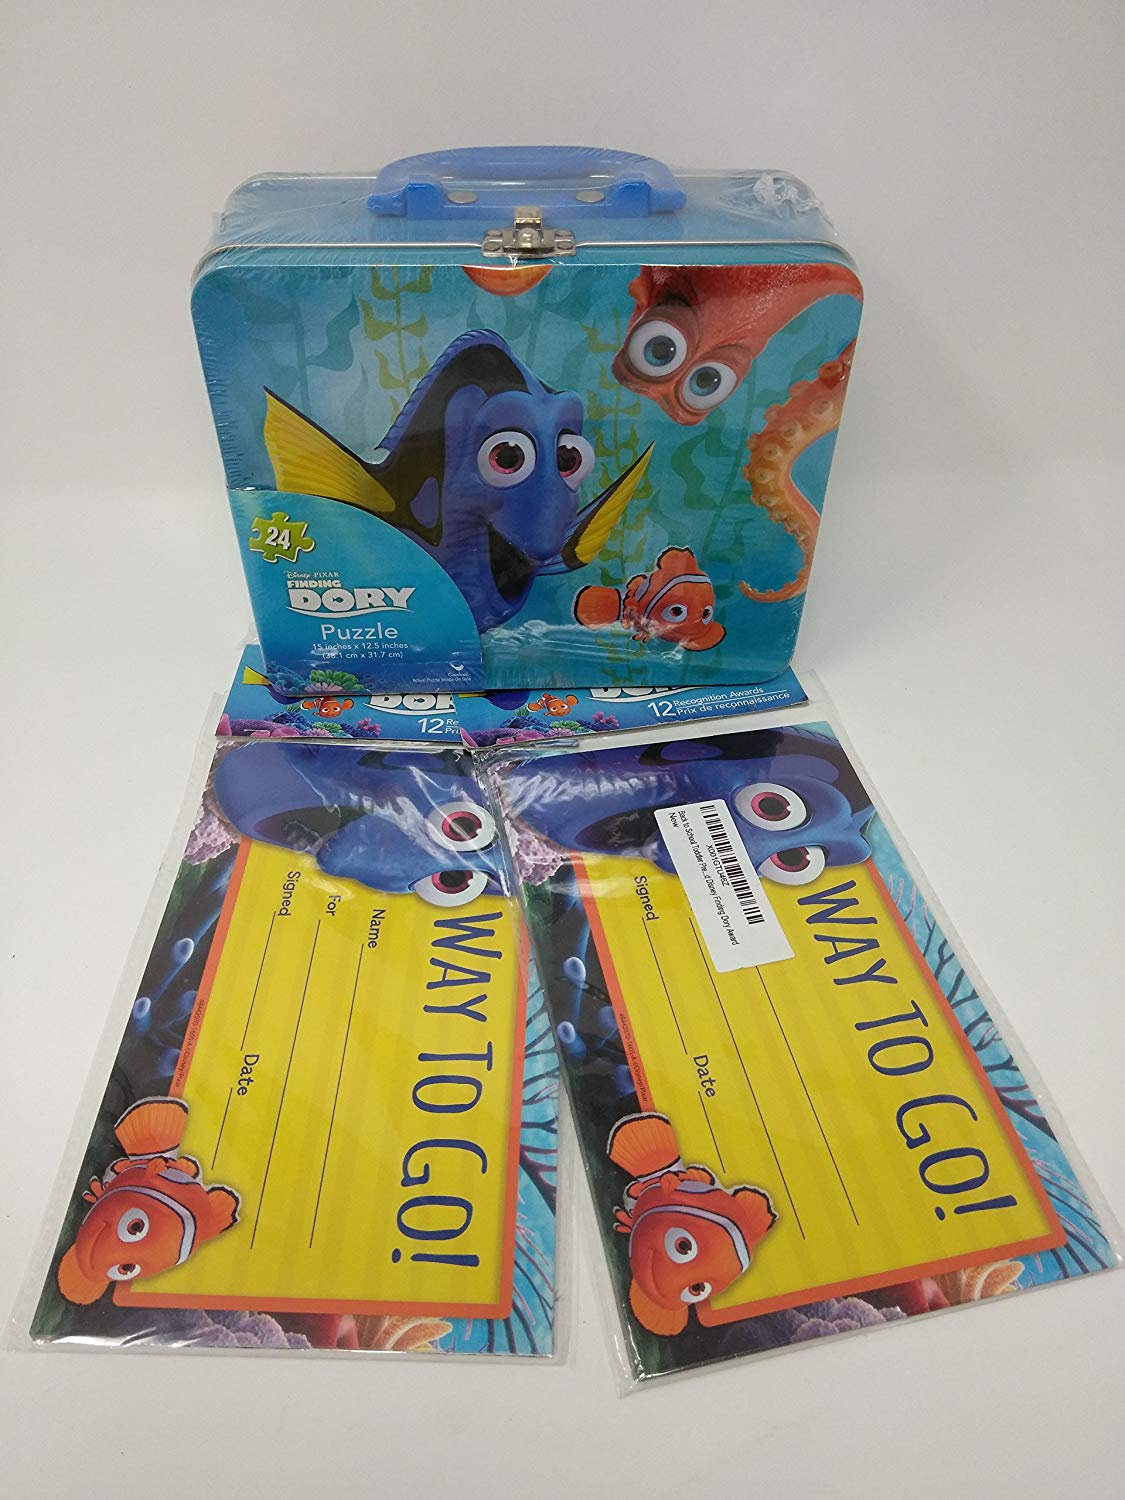 Back to School Teaching Teacher Supplies Toddler Pre-school Elementary School Puzzle Tin Lunch Box Way to Go Awards 2 Pack DORY